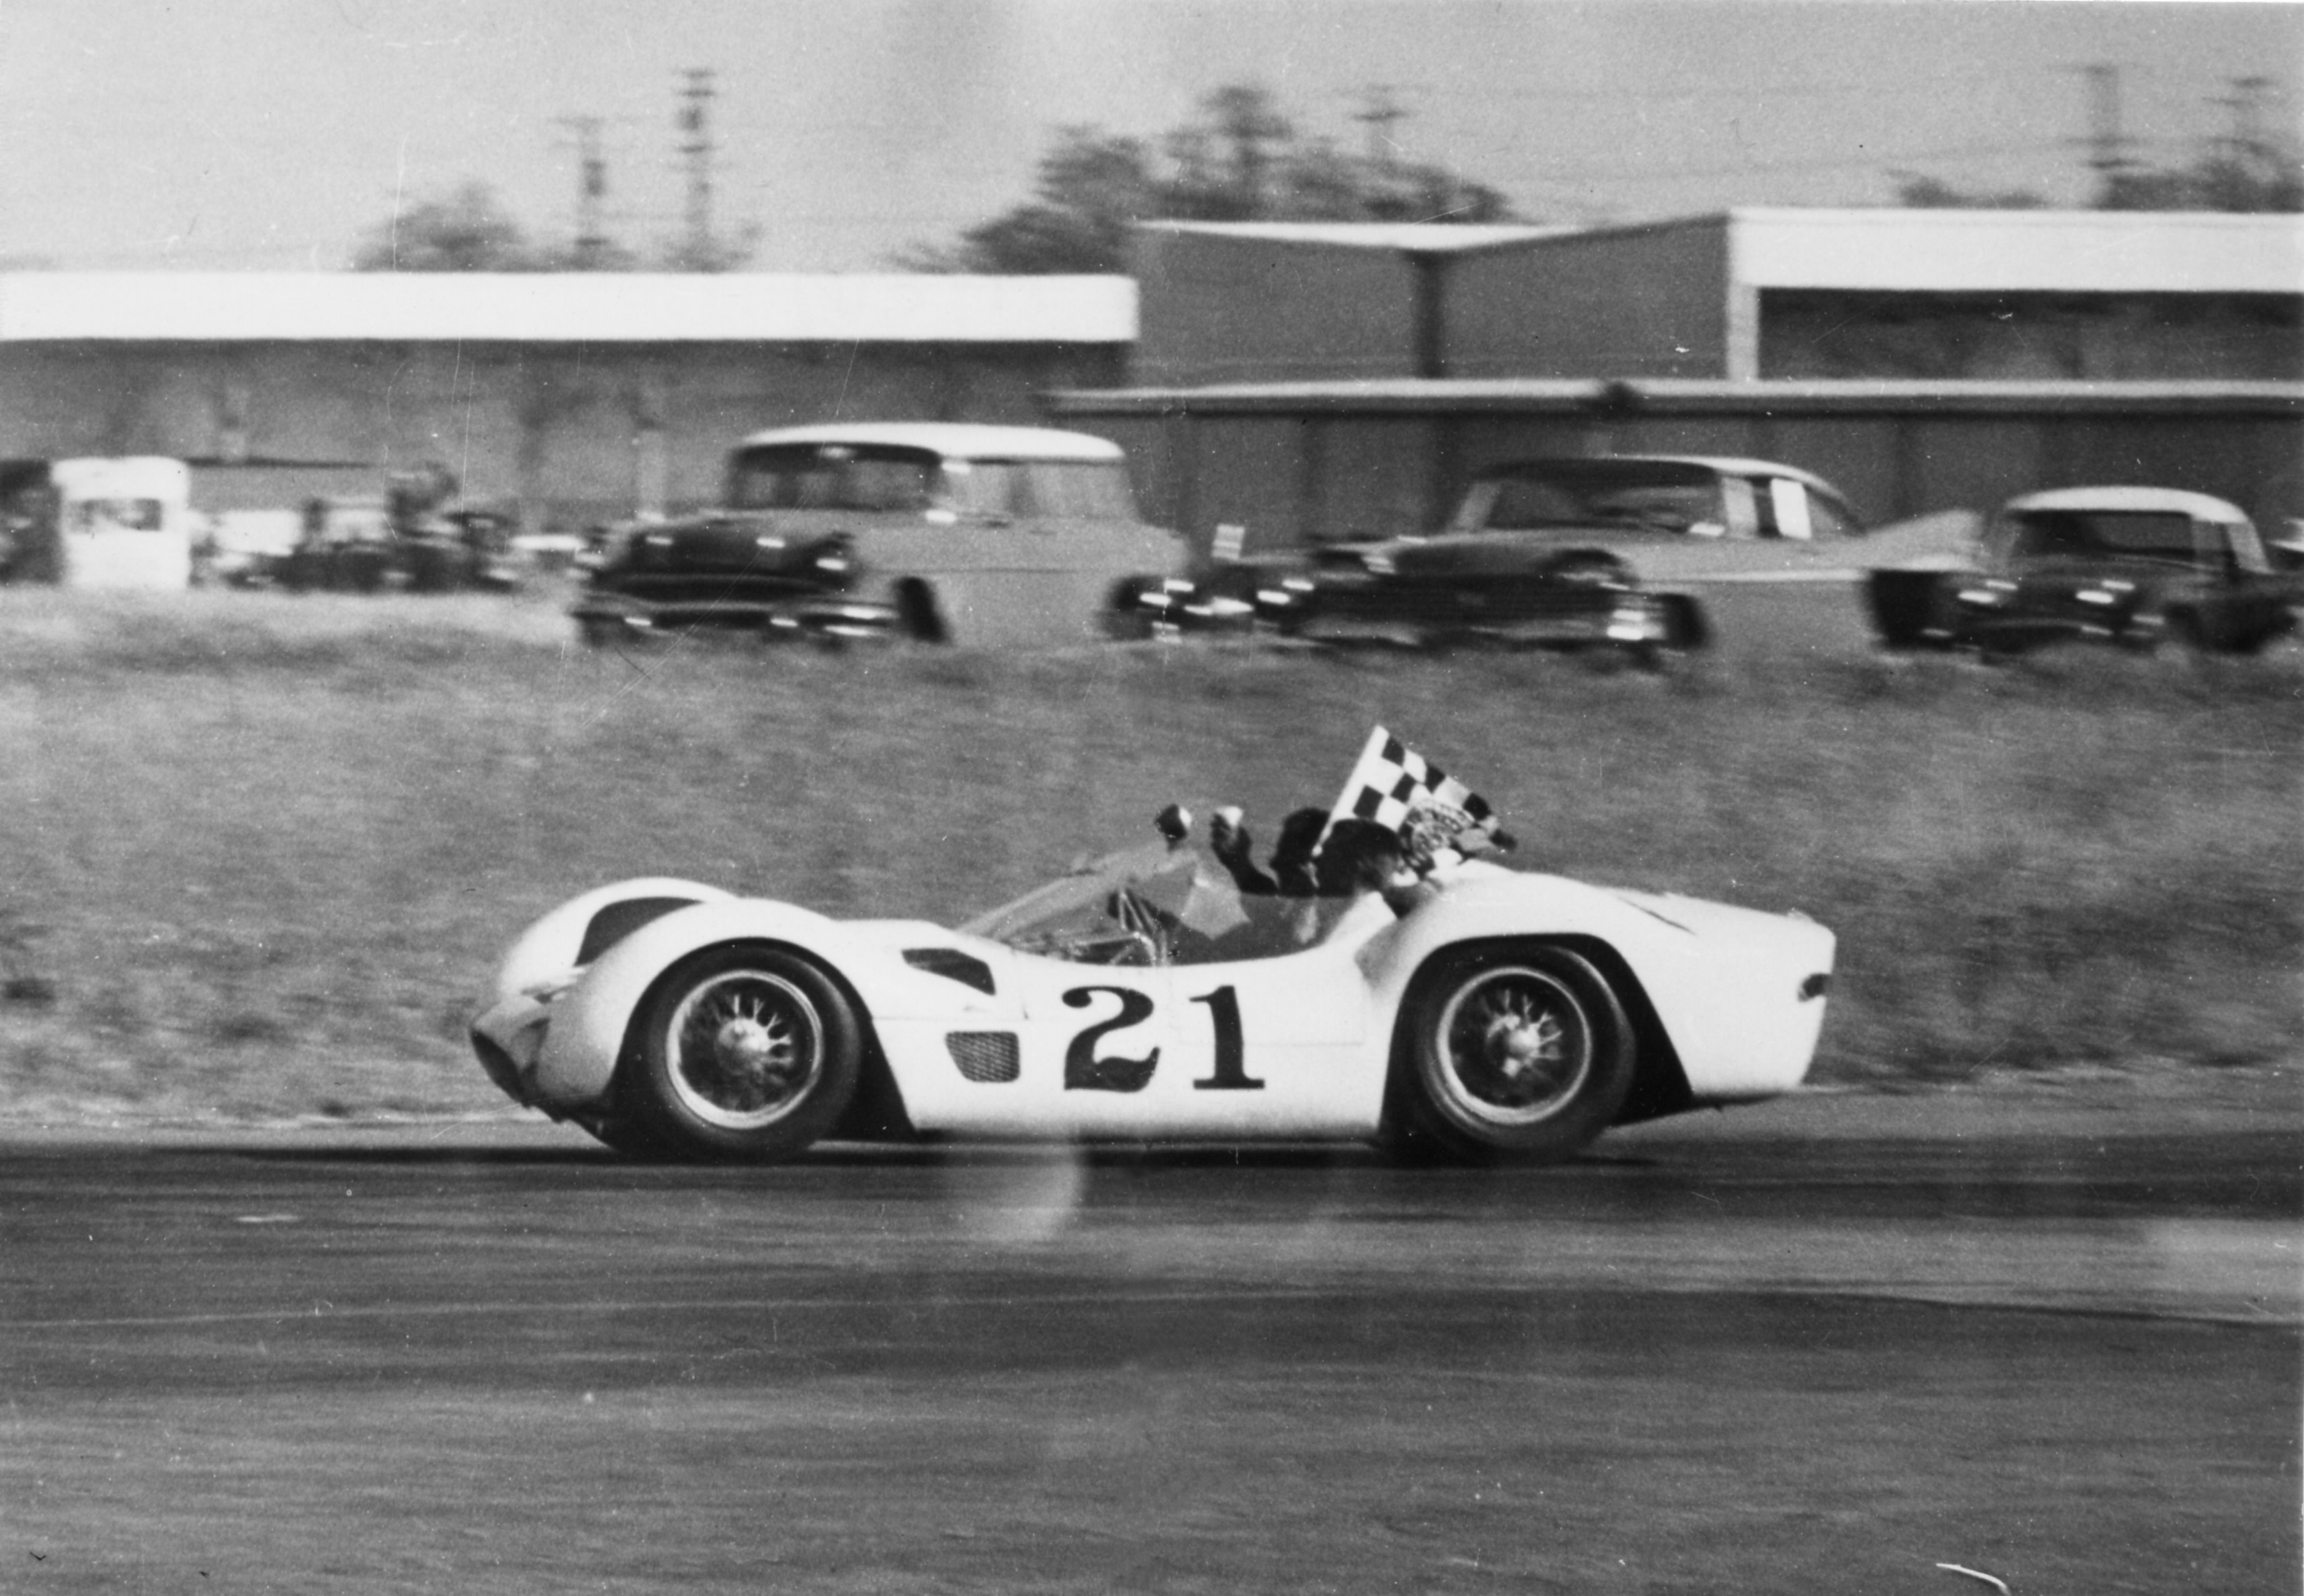 Type 61 Birdcage at Sebring